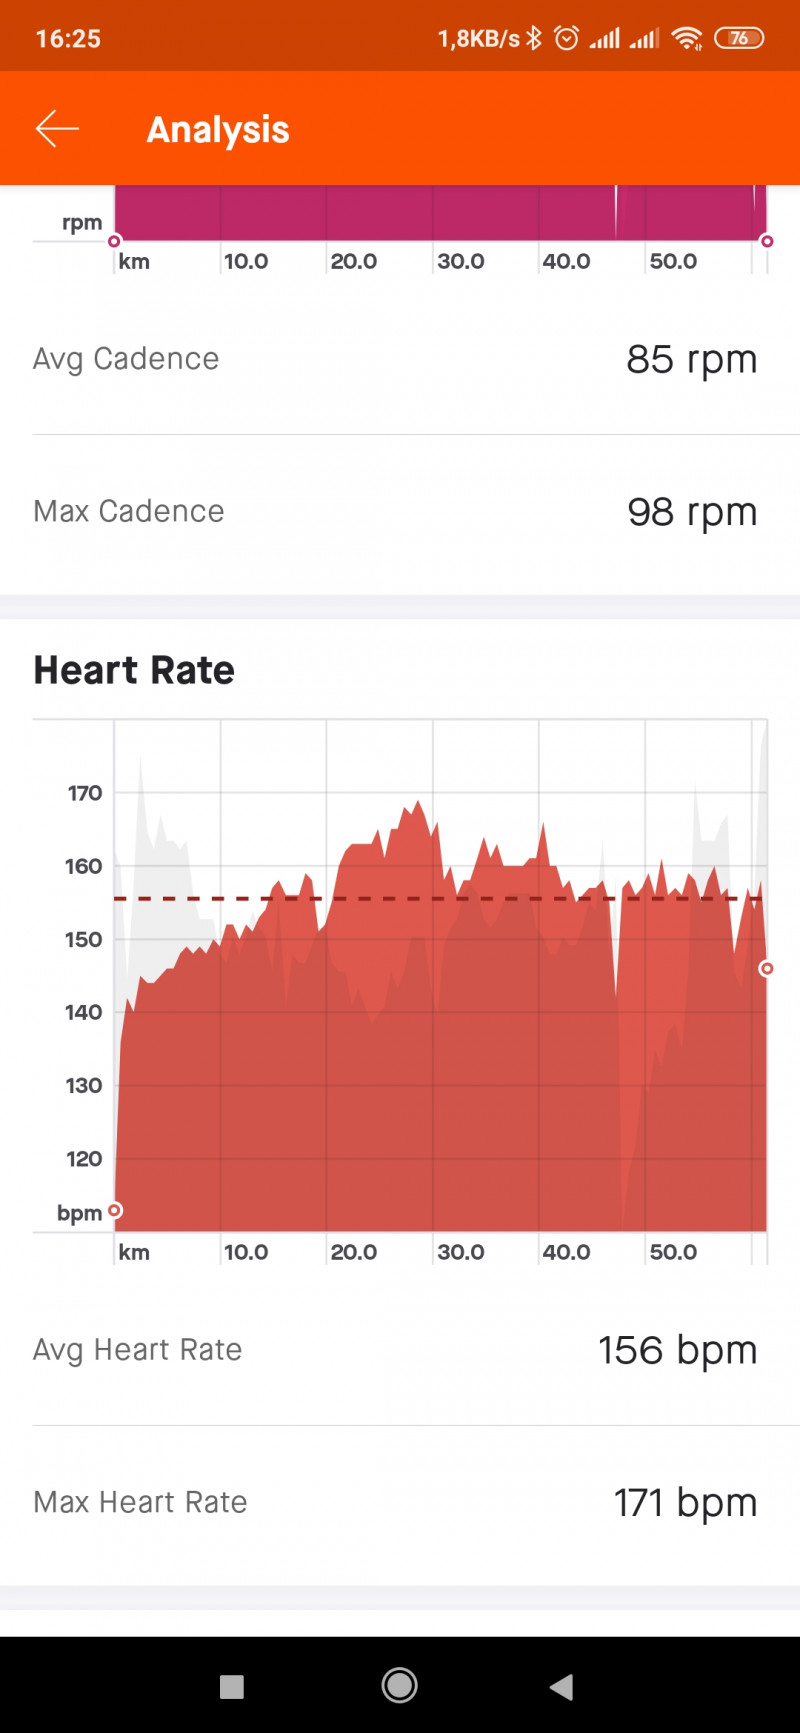 Screenshot_2021-02-06-16-25-11-387_com.strava.jpg